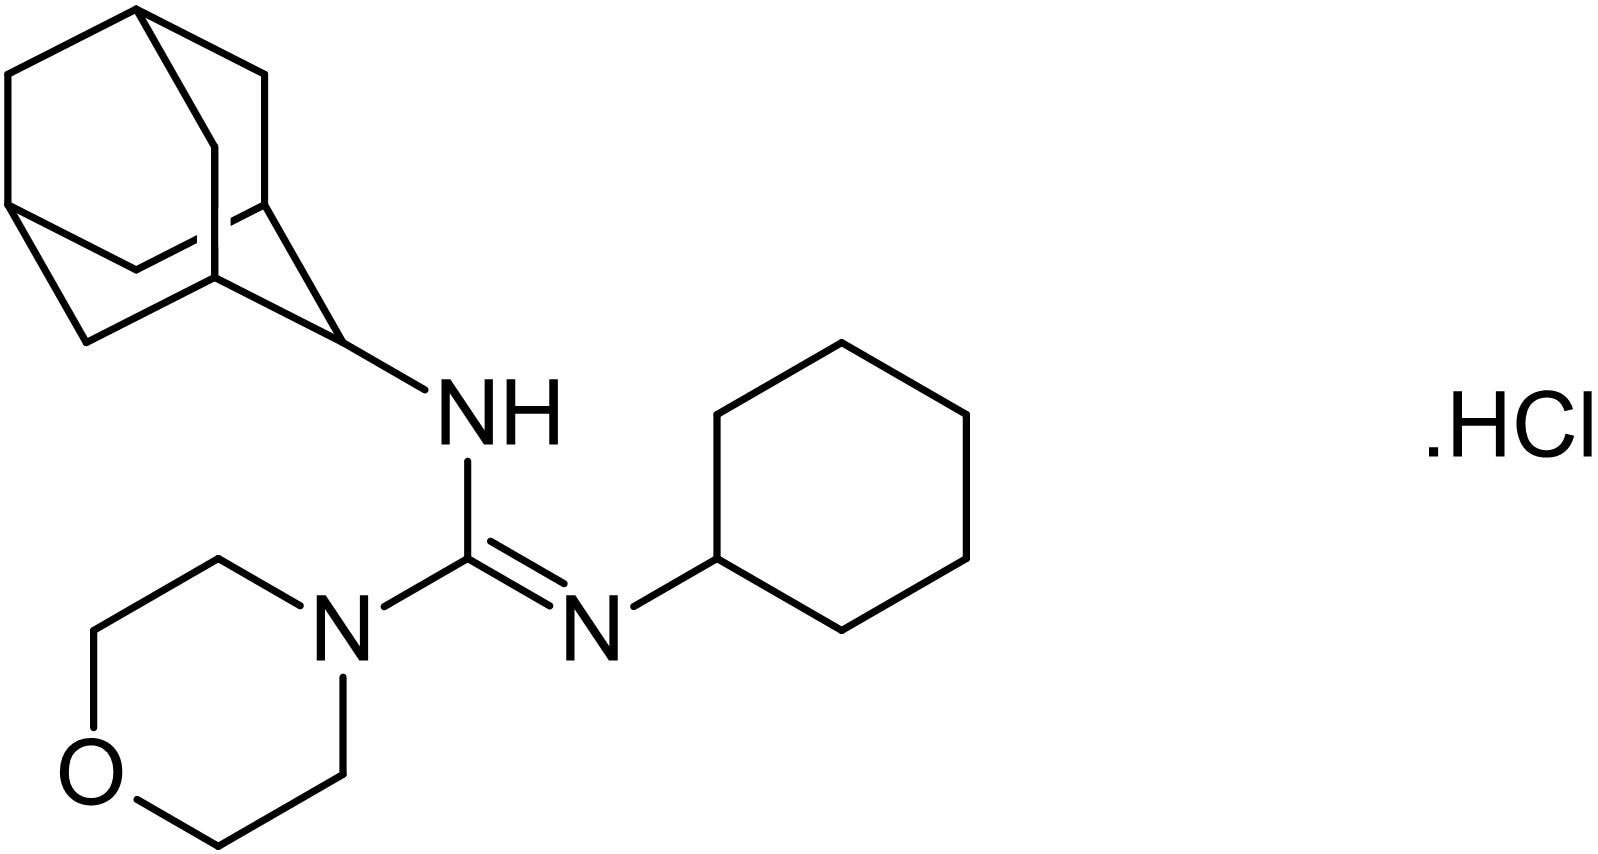 Chemical Structure - U-37883A, ATP-sensitive K<sup>+</sup> channel blocker (ab141673)